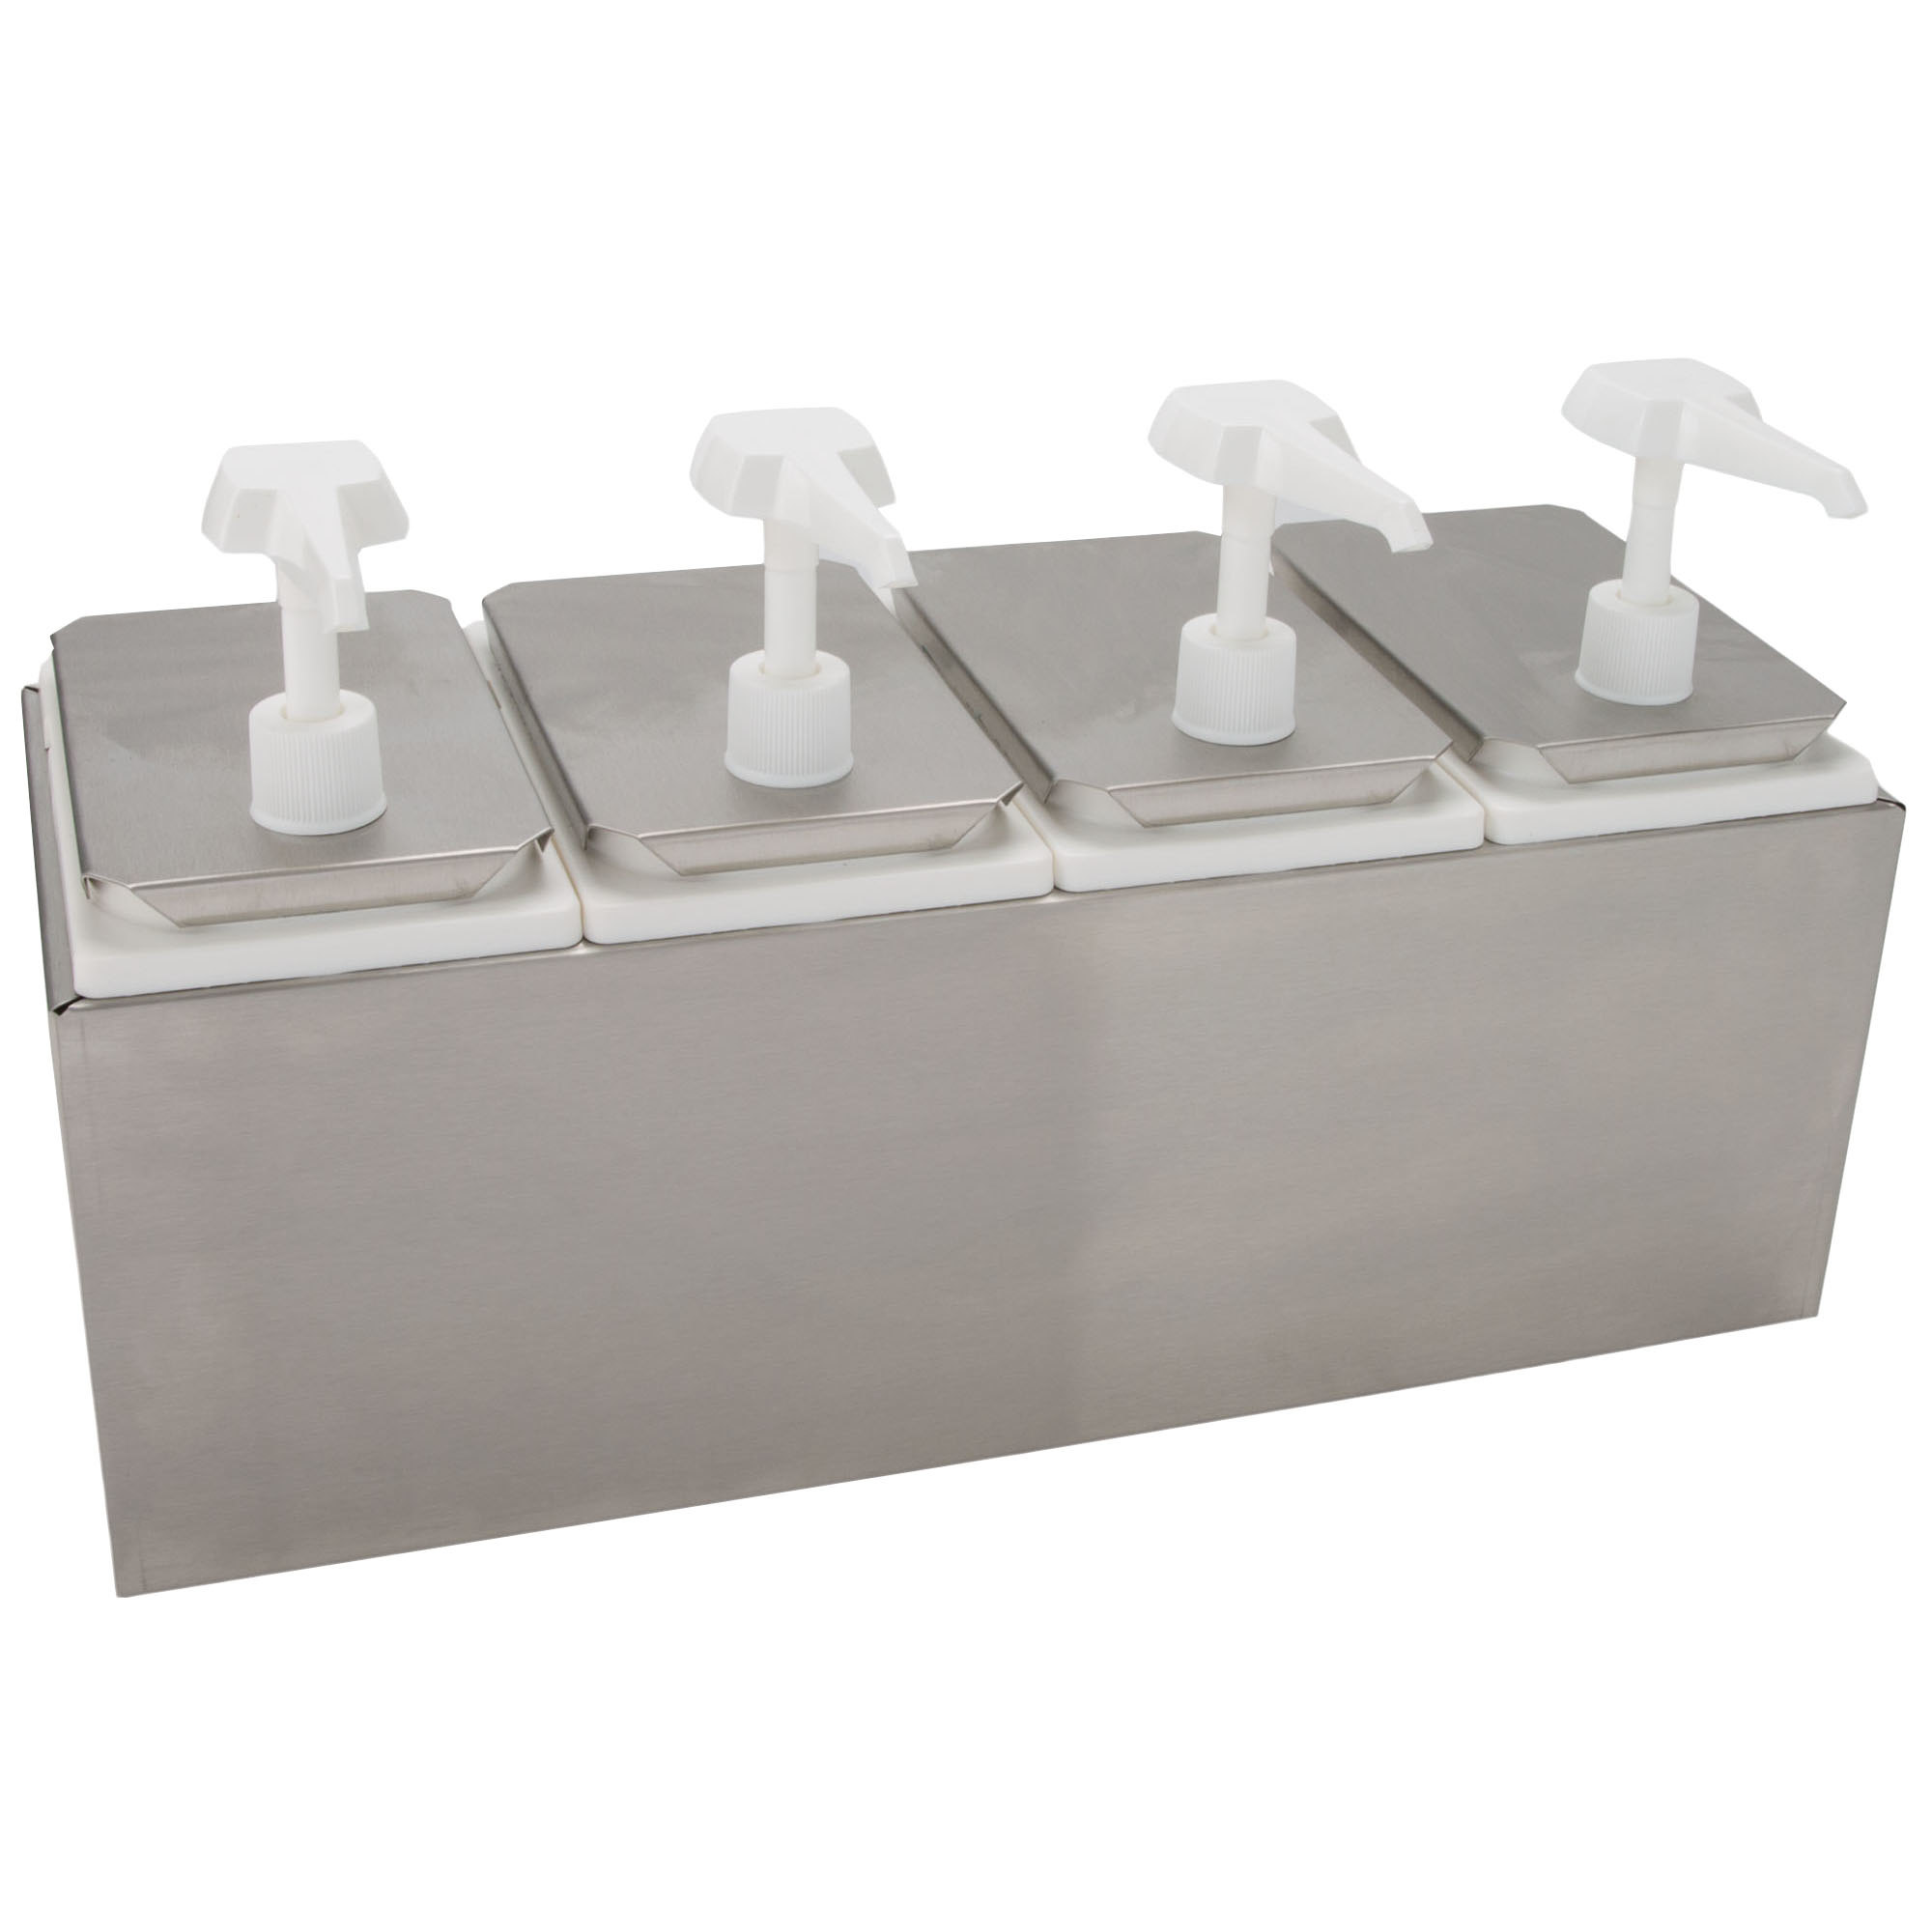 Stainless steel condiment pump dispenser with four white pumps